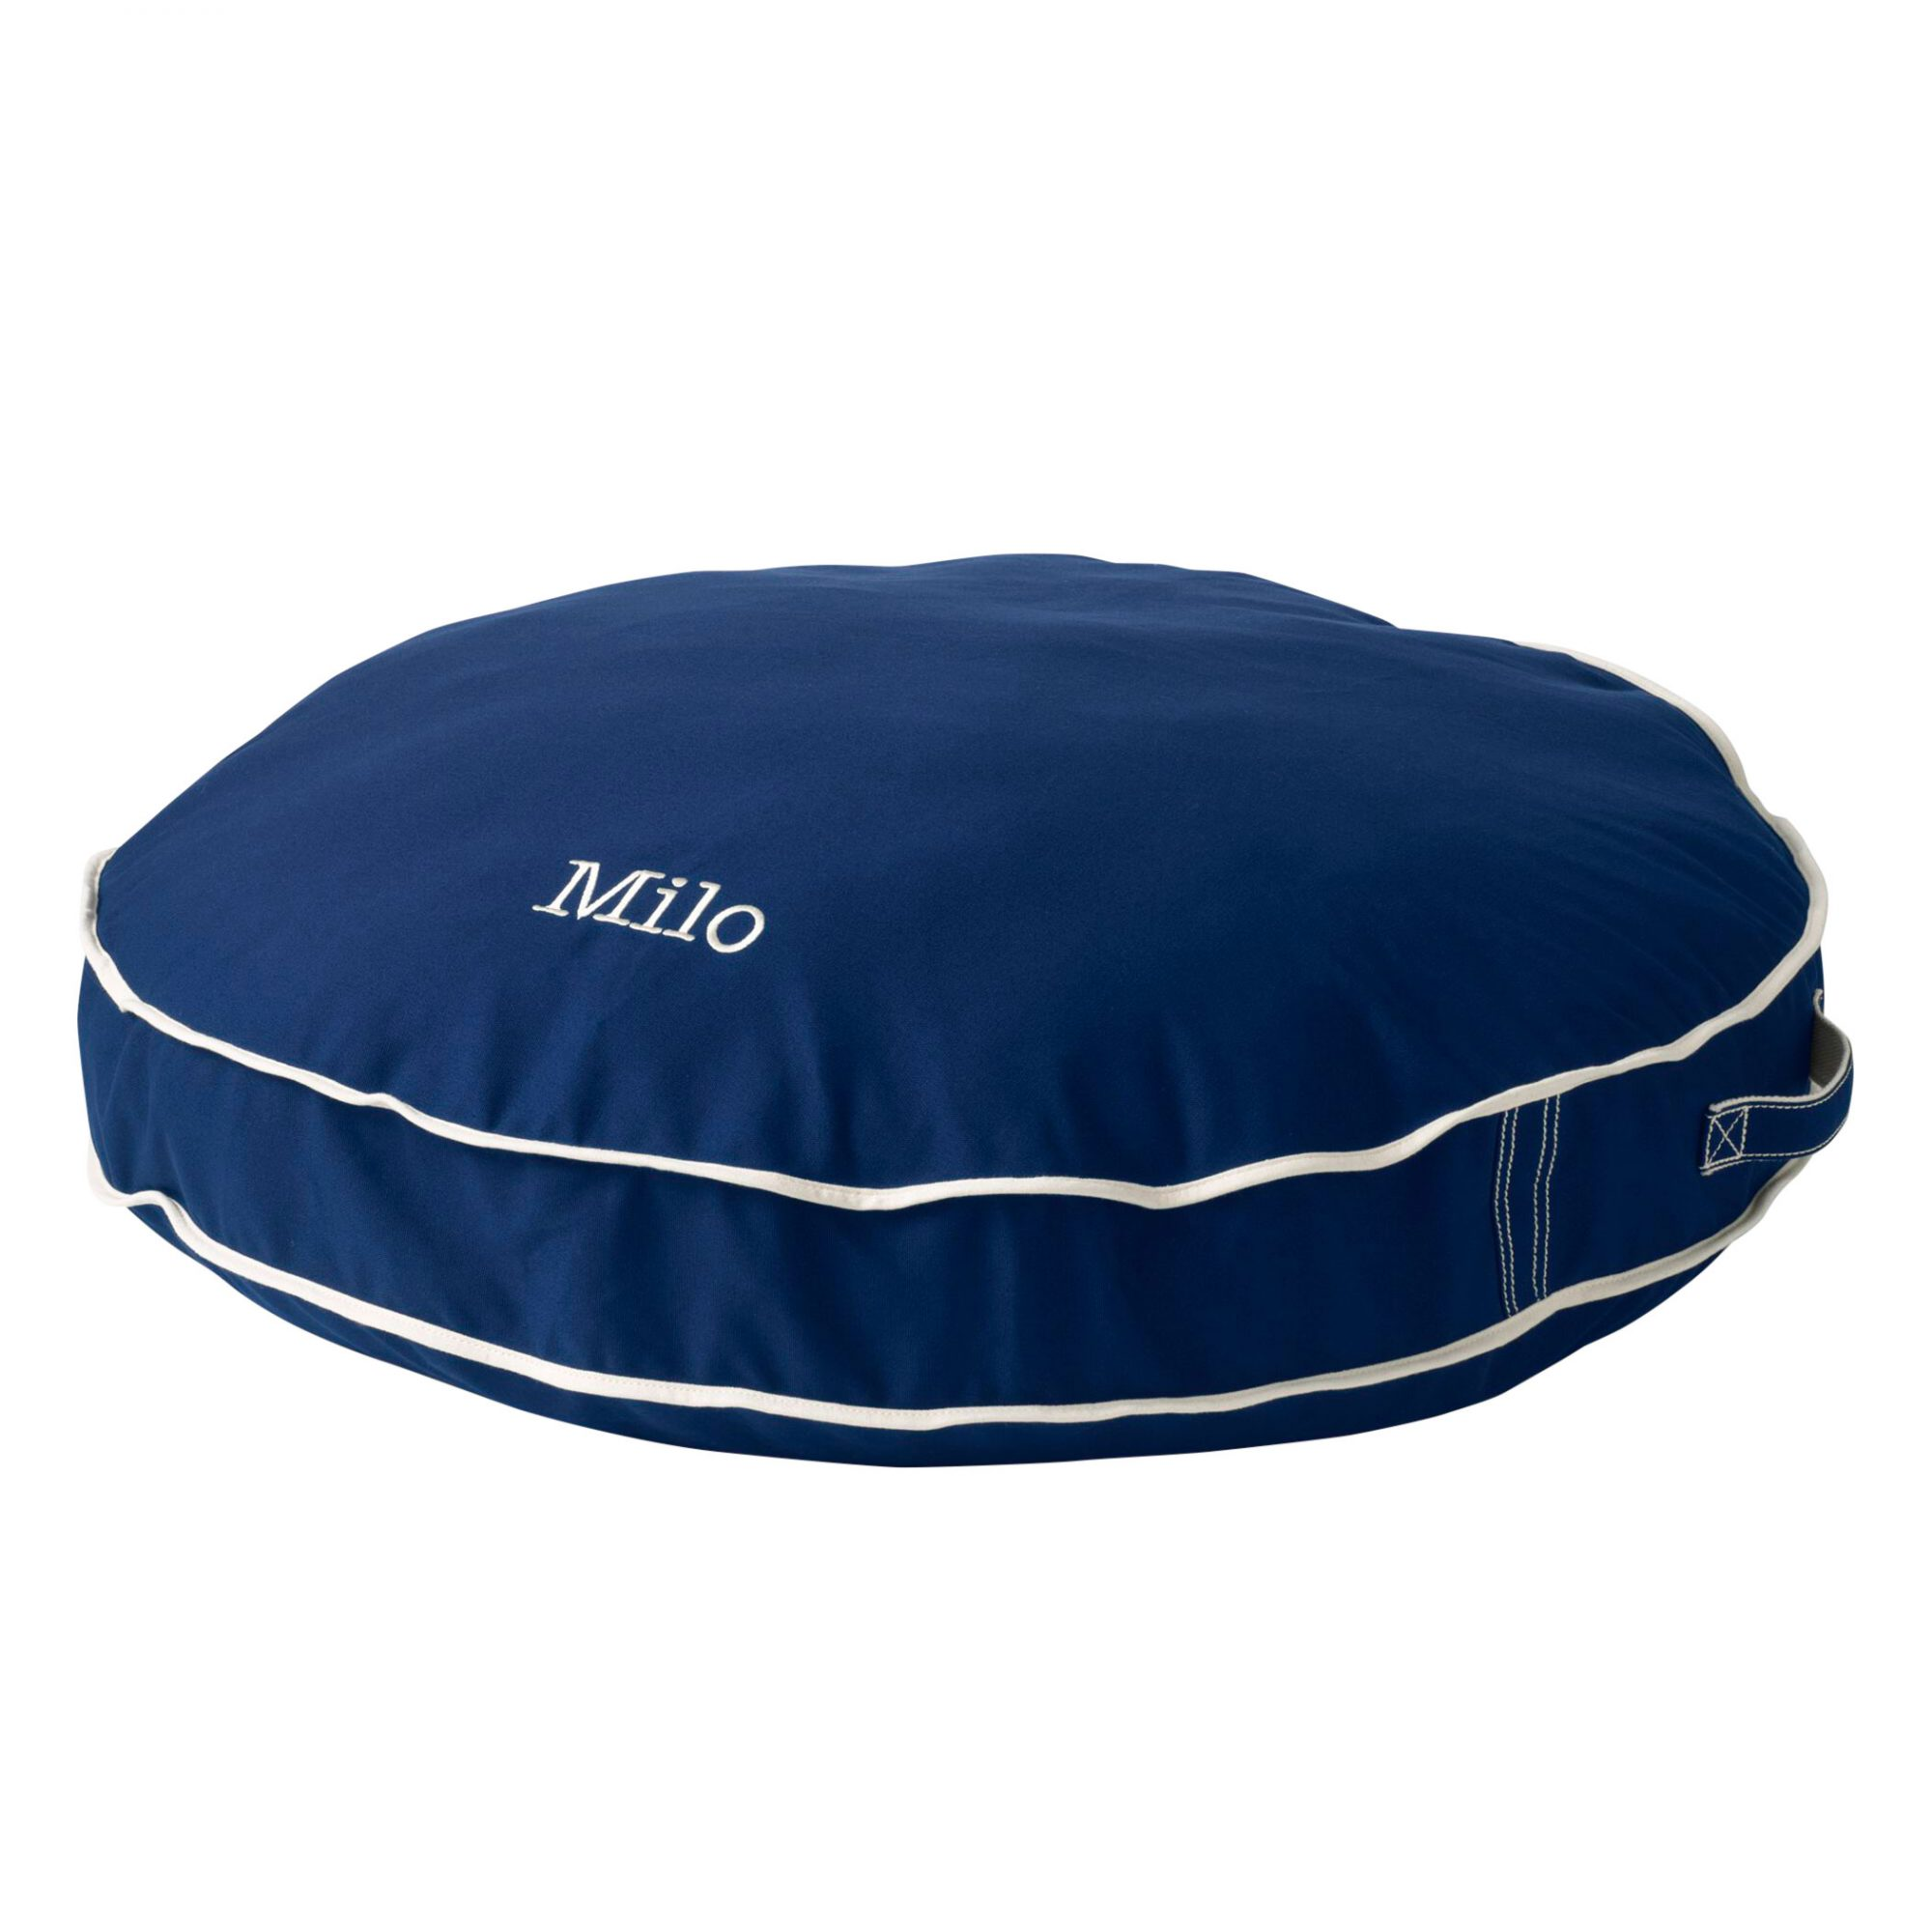 Lands End Round Canvas Dog Bed Cover